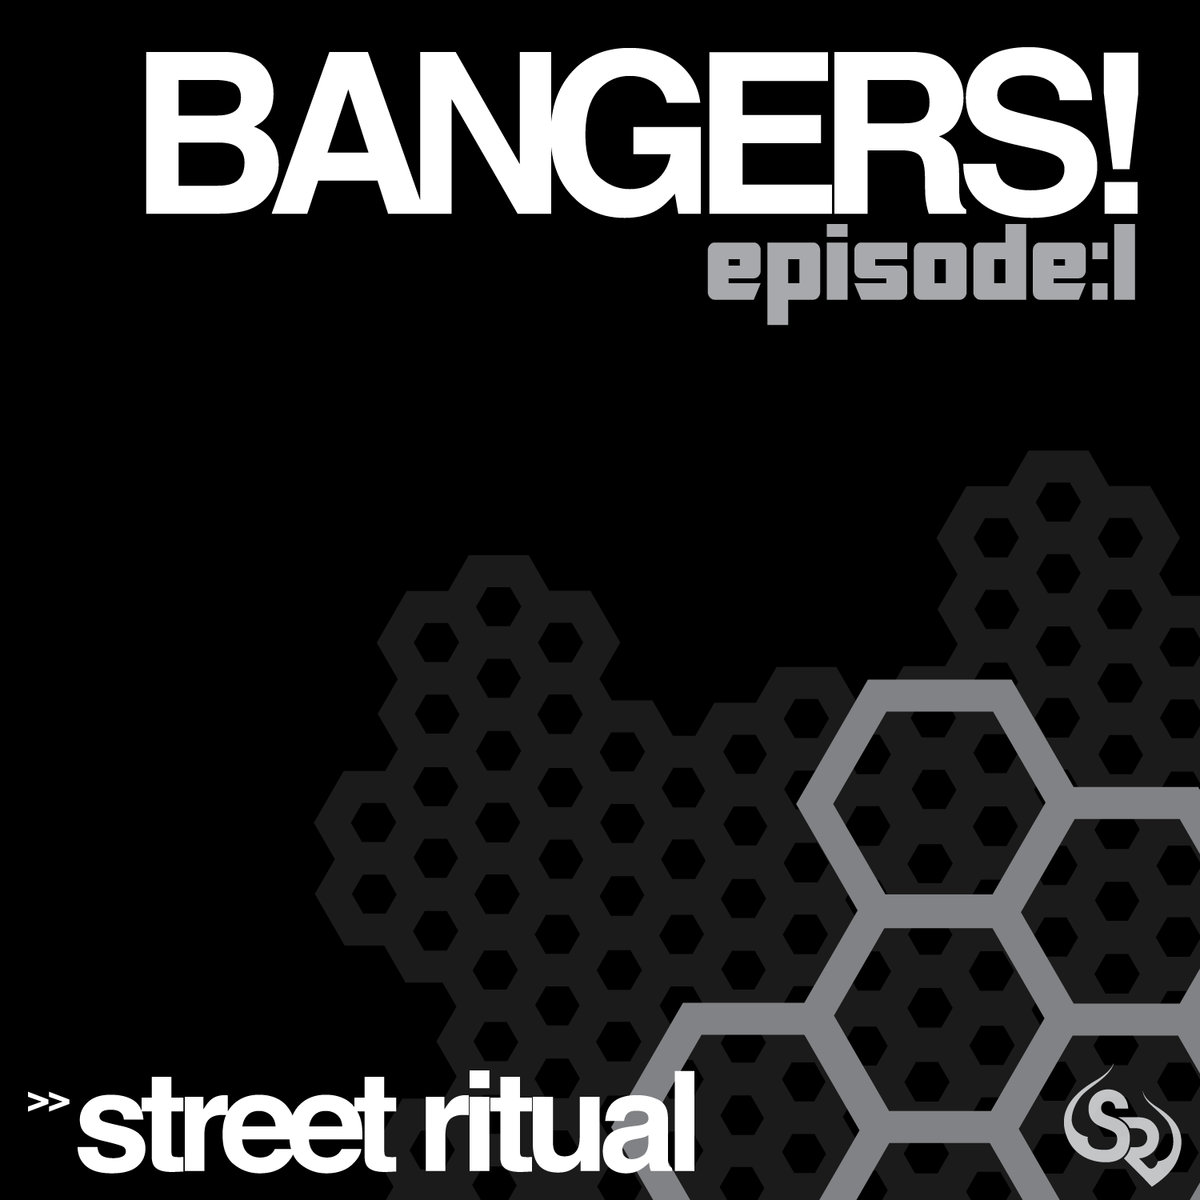 niceFingers - Indigenous @ 'Various Artists - Bangers! Episode:1' album (bass, electronic)